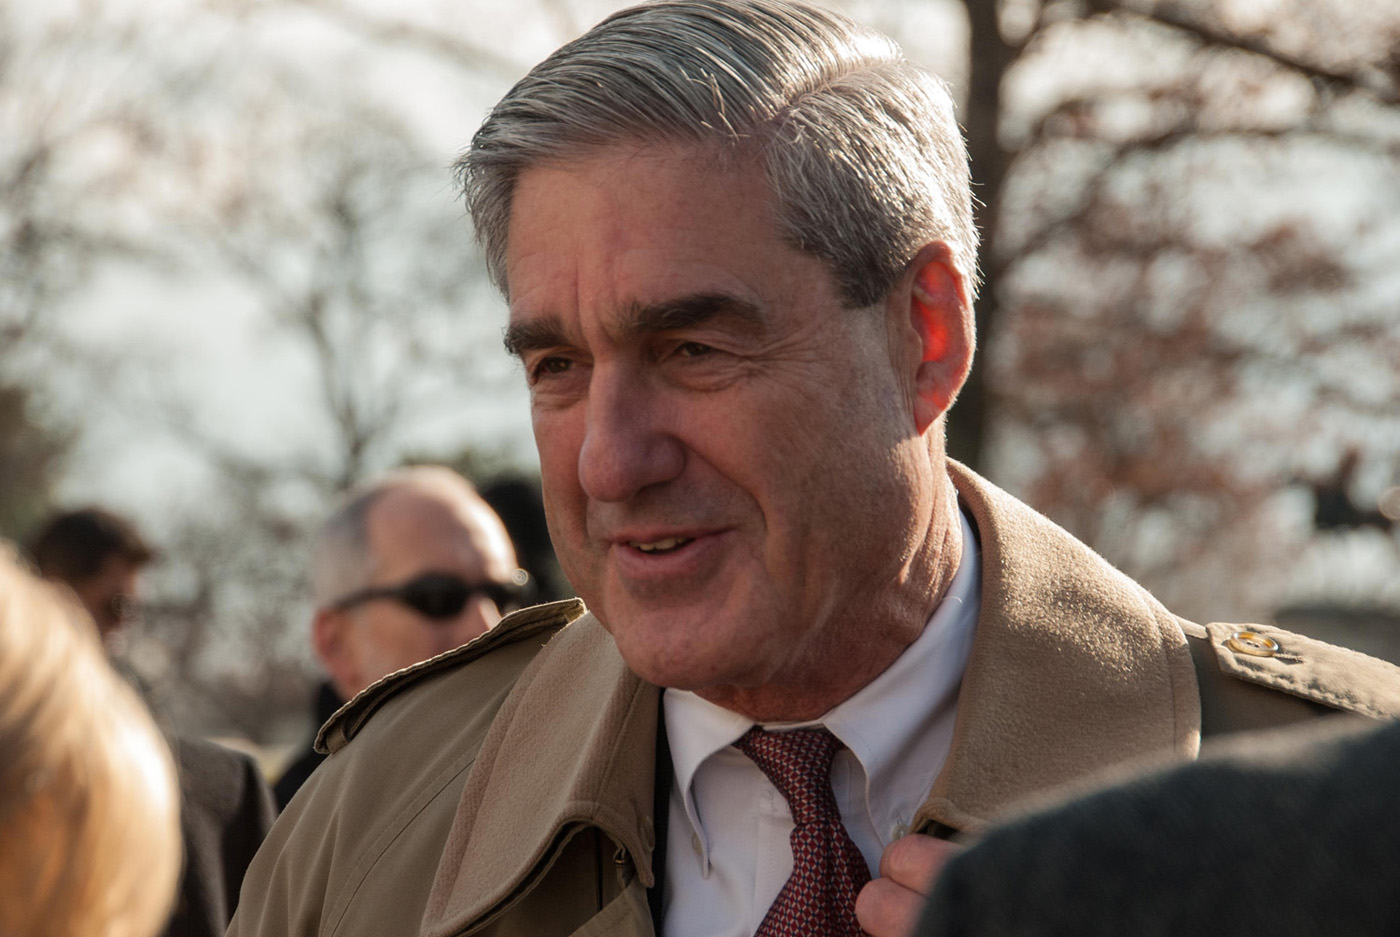 Robert Mueller is 'properly operating' in probe, Justice Department says